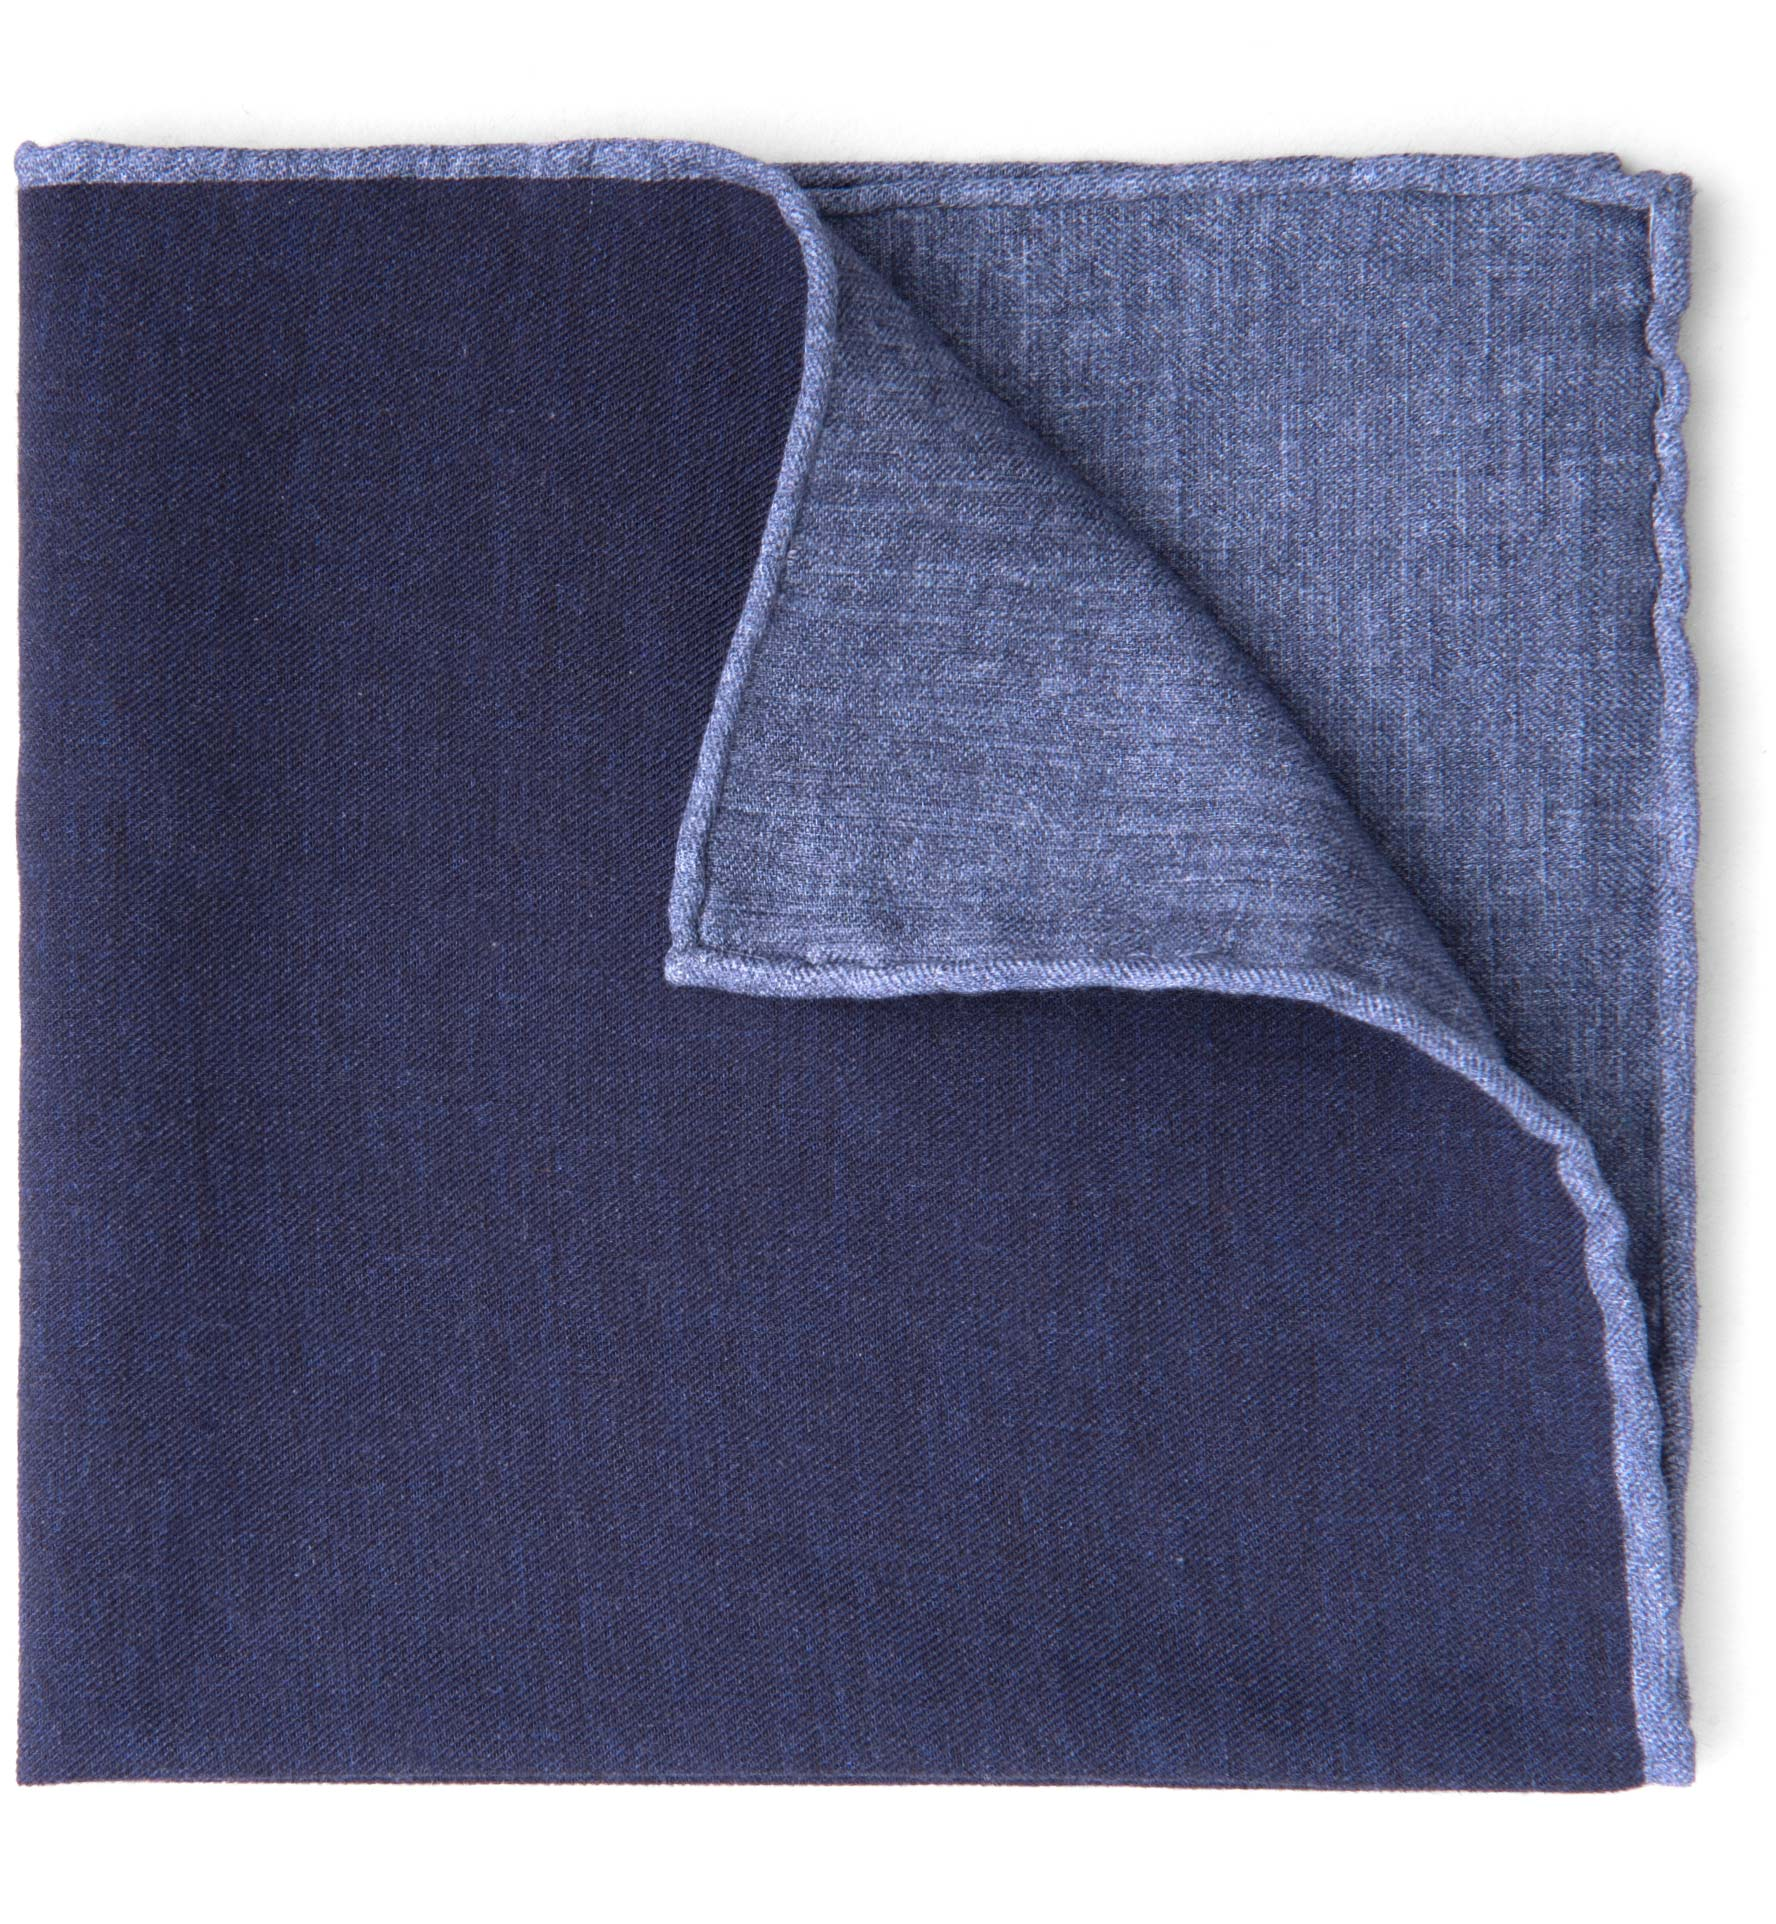 Zoom Image of Navy Melange Wool and Cotton Pocket Square